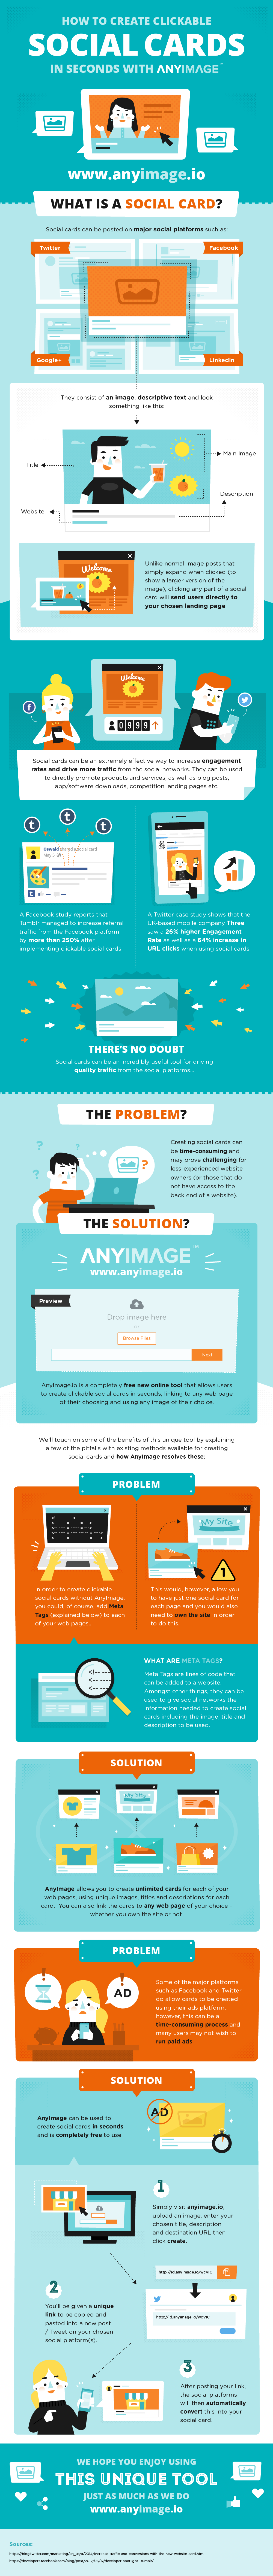 anyimage-infographic